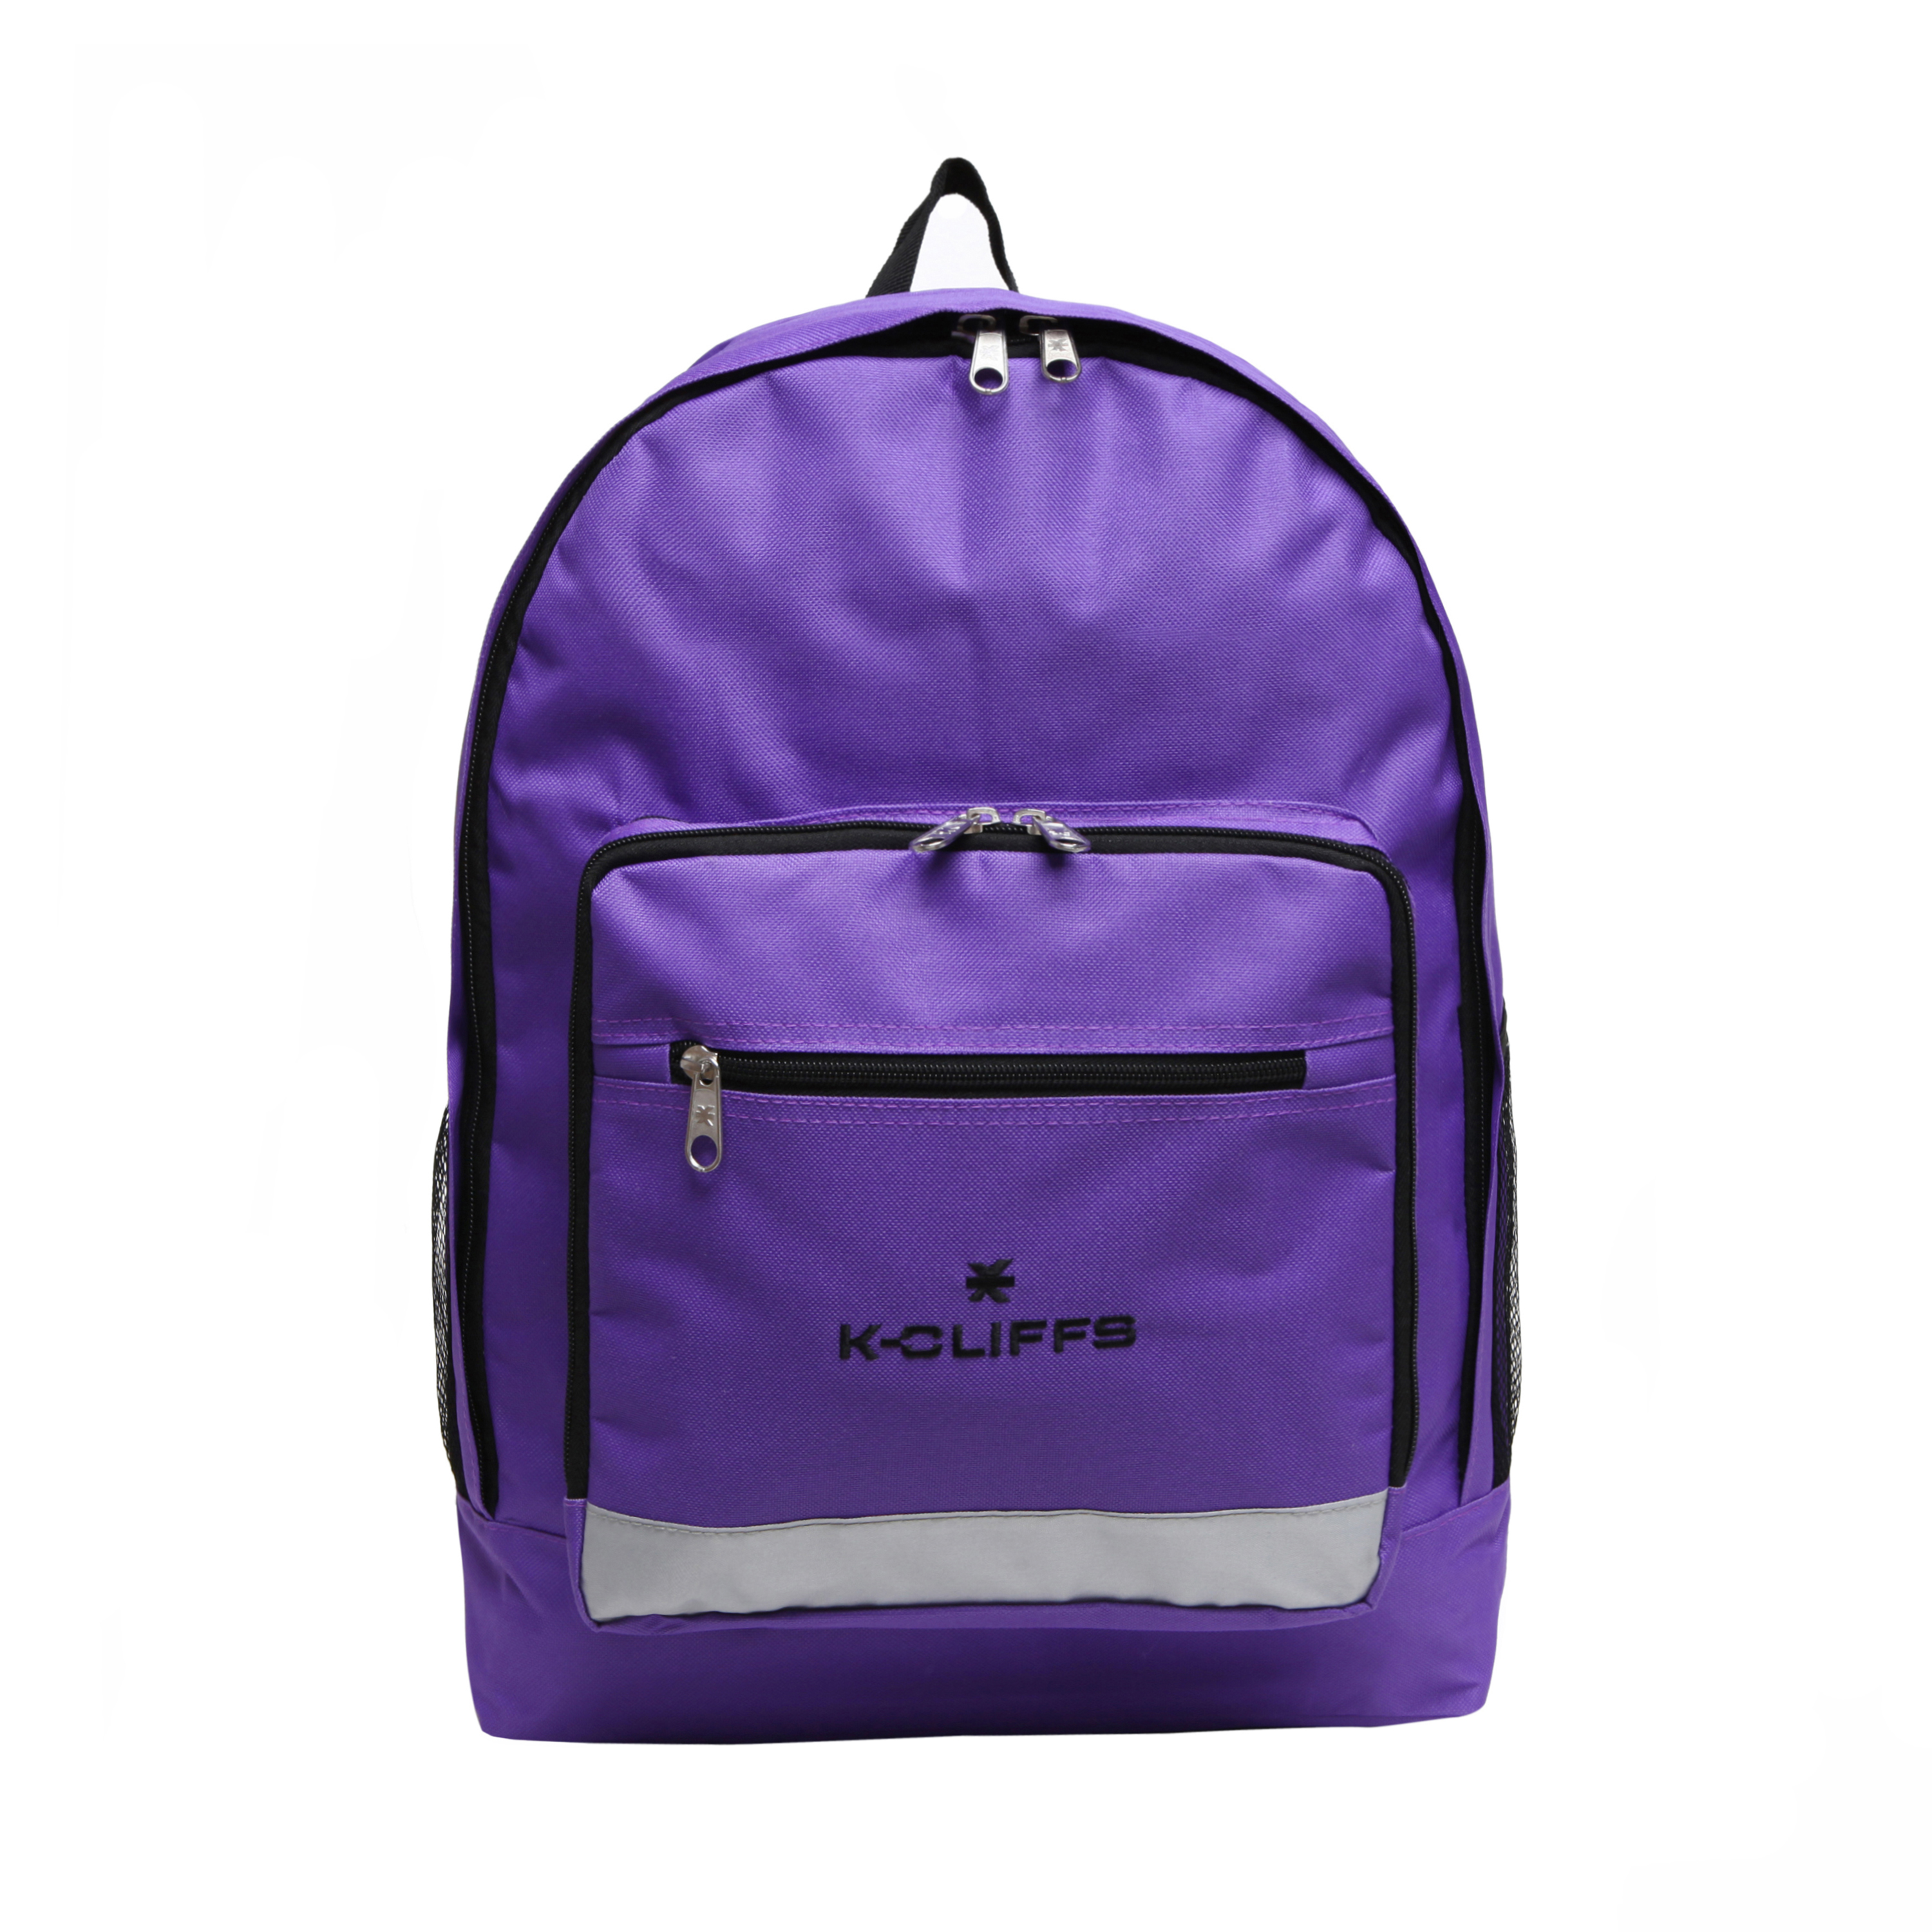 Wholesale Backpacks Purple Multi Compartment Full Size Backpack with Reflective Strip